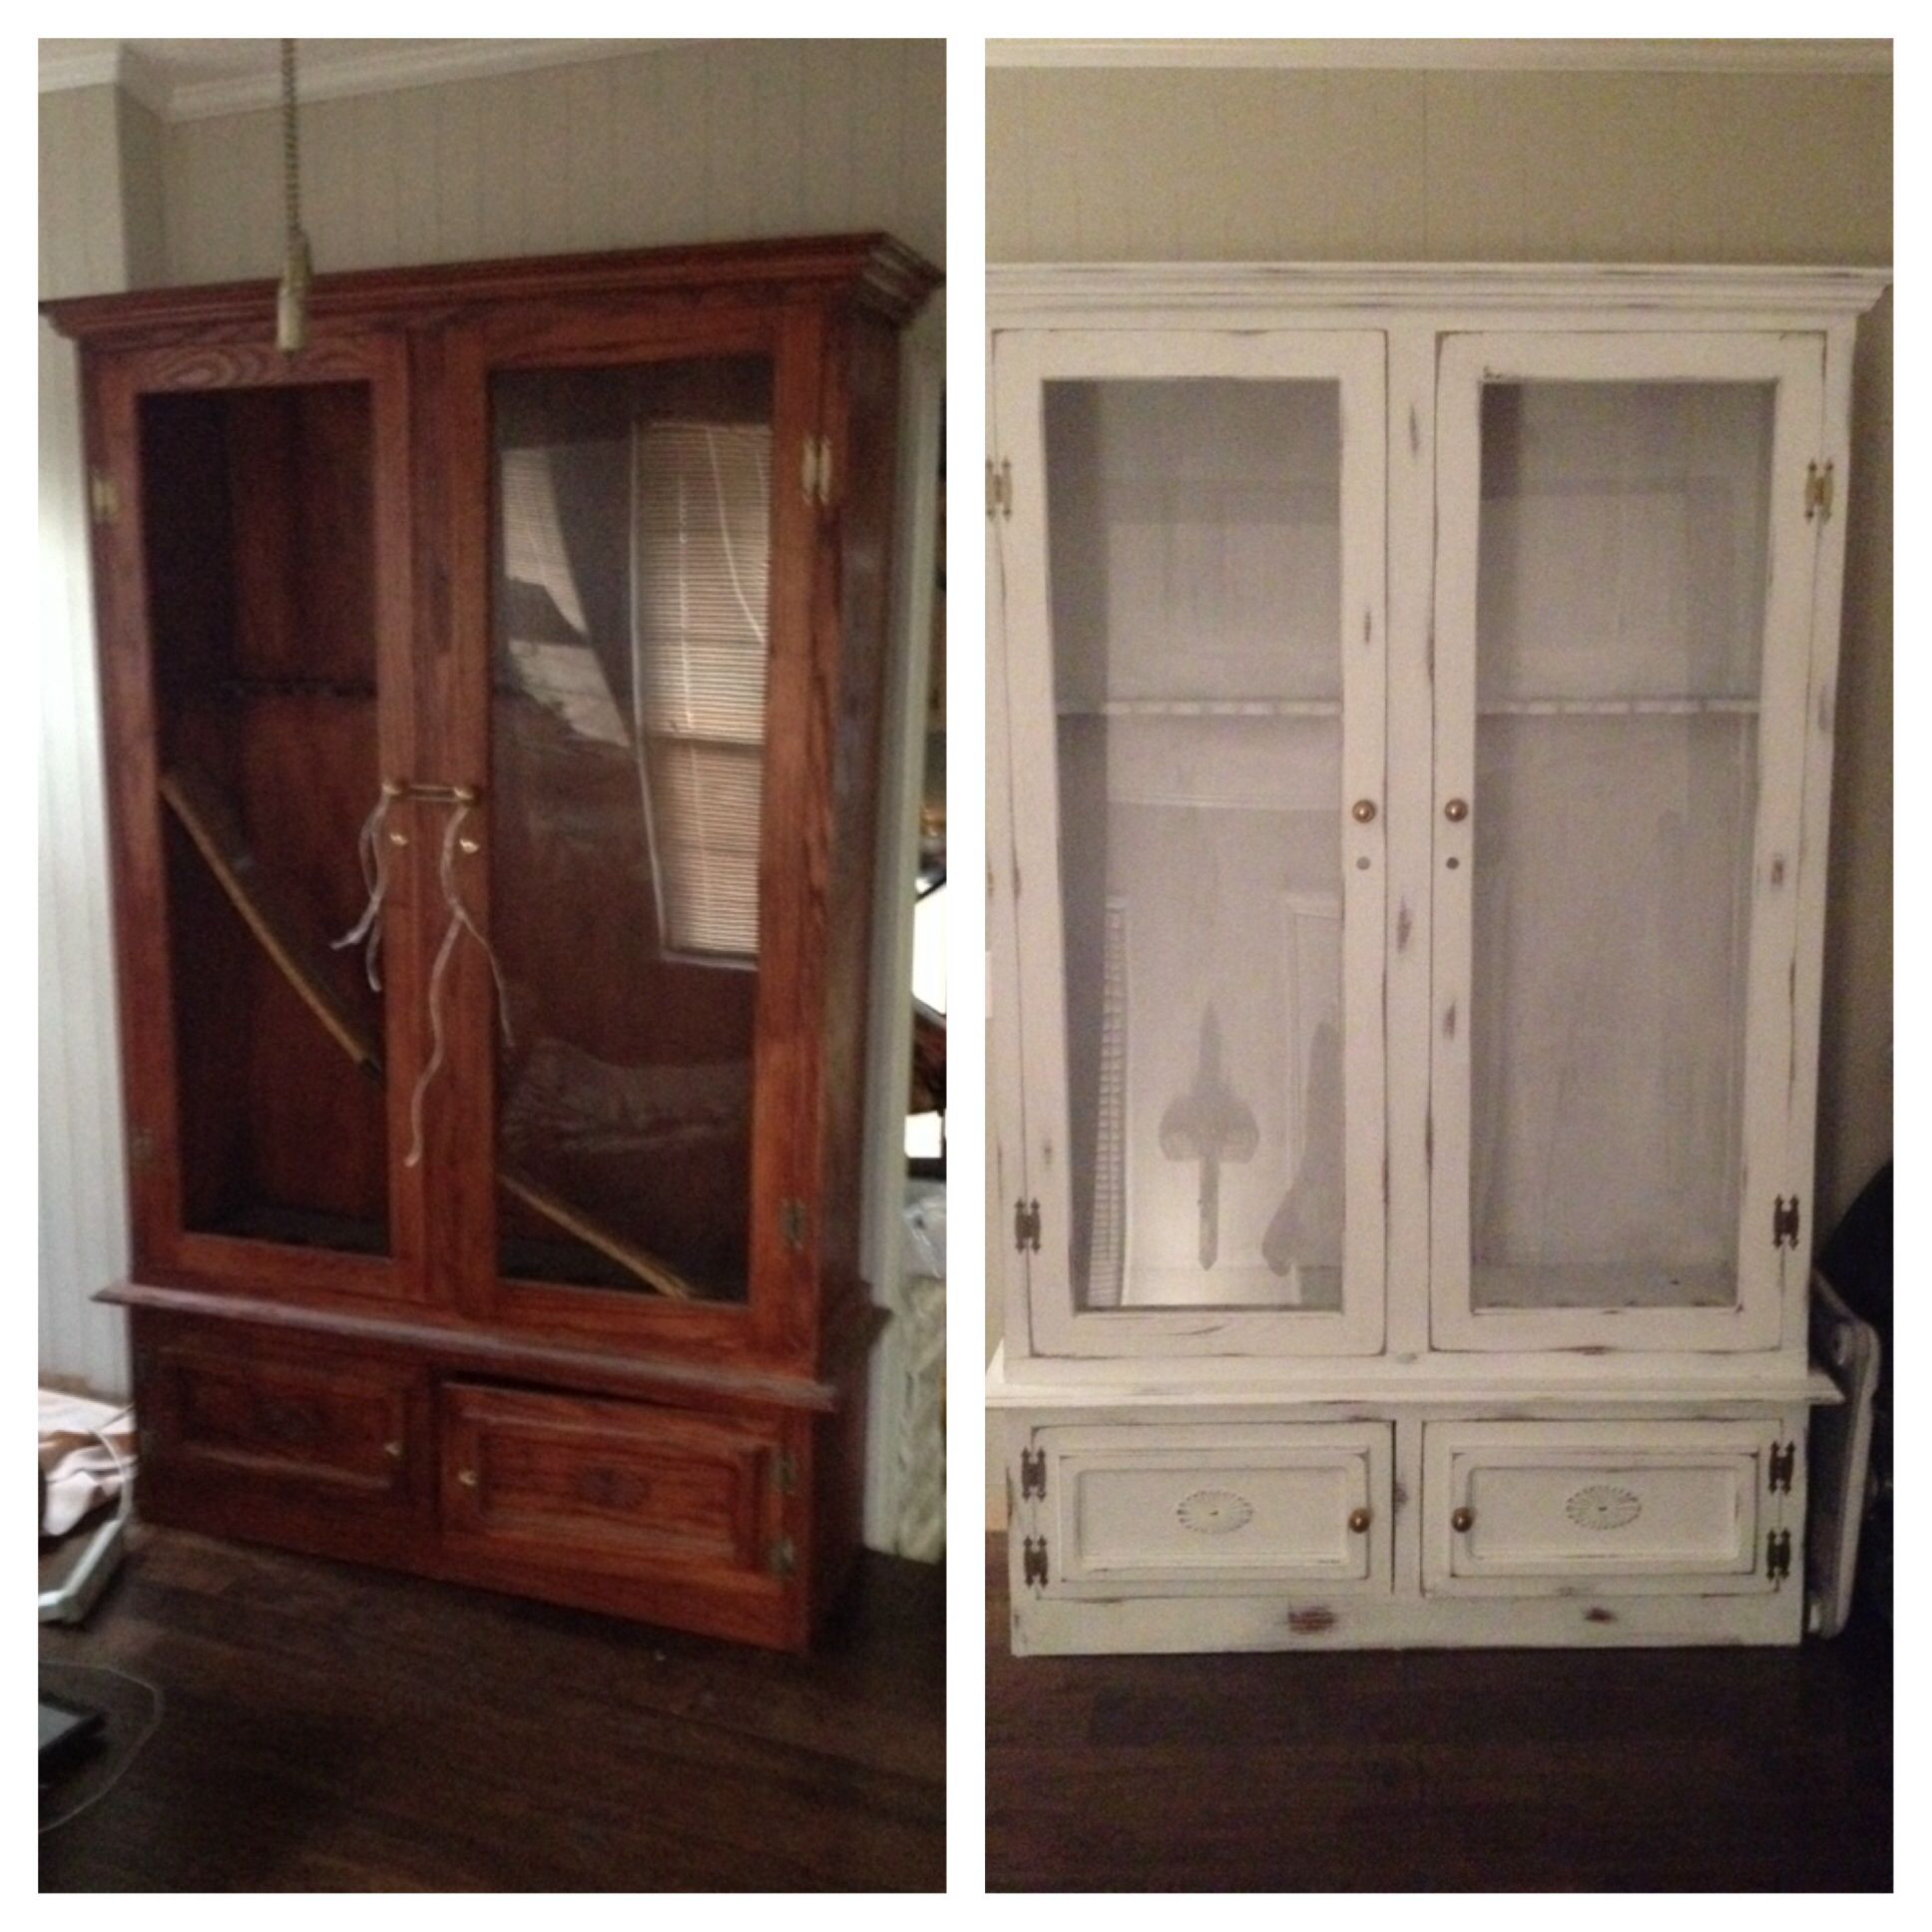 Painted Wood Furniture And Cabinets: Gun Cabinet Redo With Chalk Paint... Can't Wait To Do This